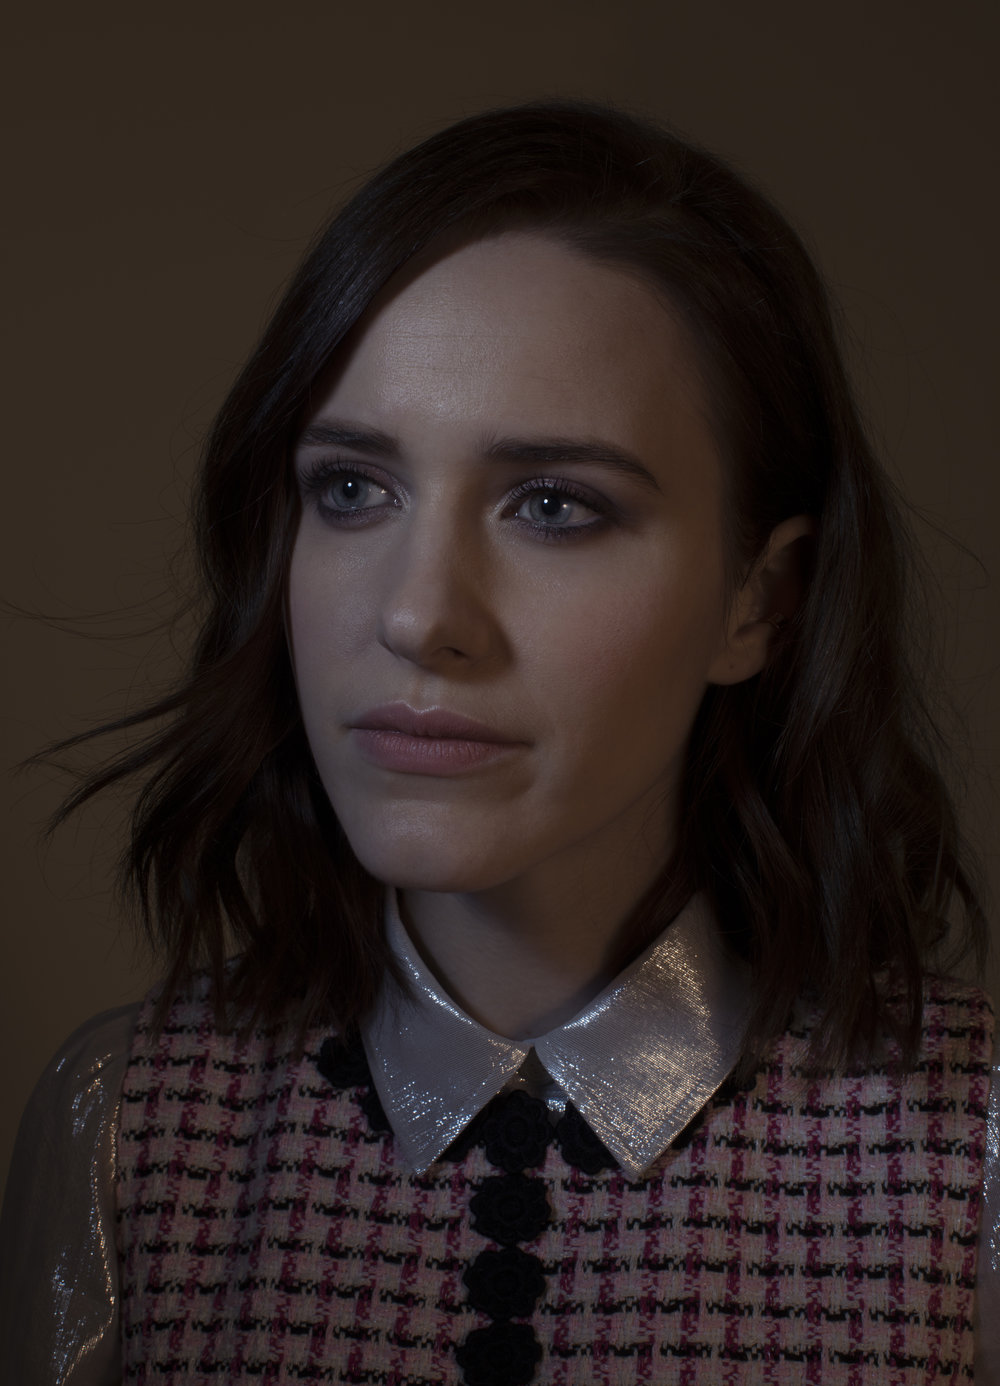 RACHEL BROSNAHAN | ACTRESS